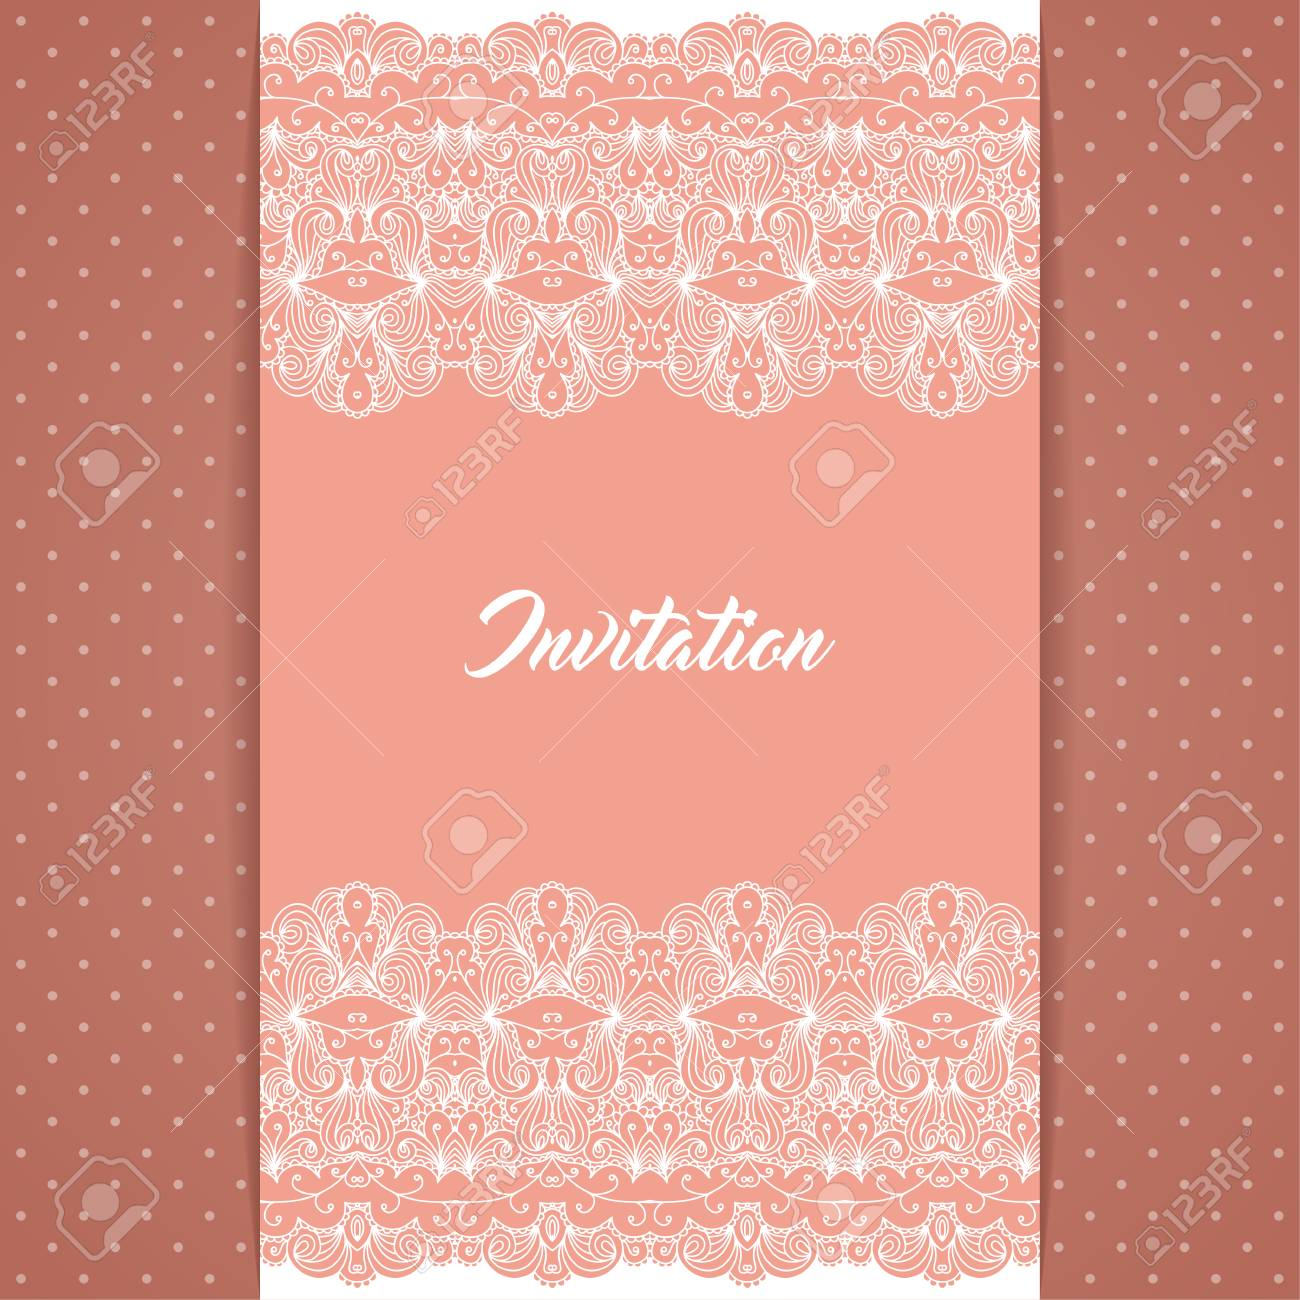 greeting card or invitation template in retro style with lace